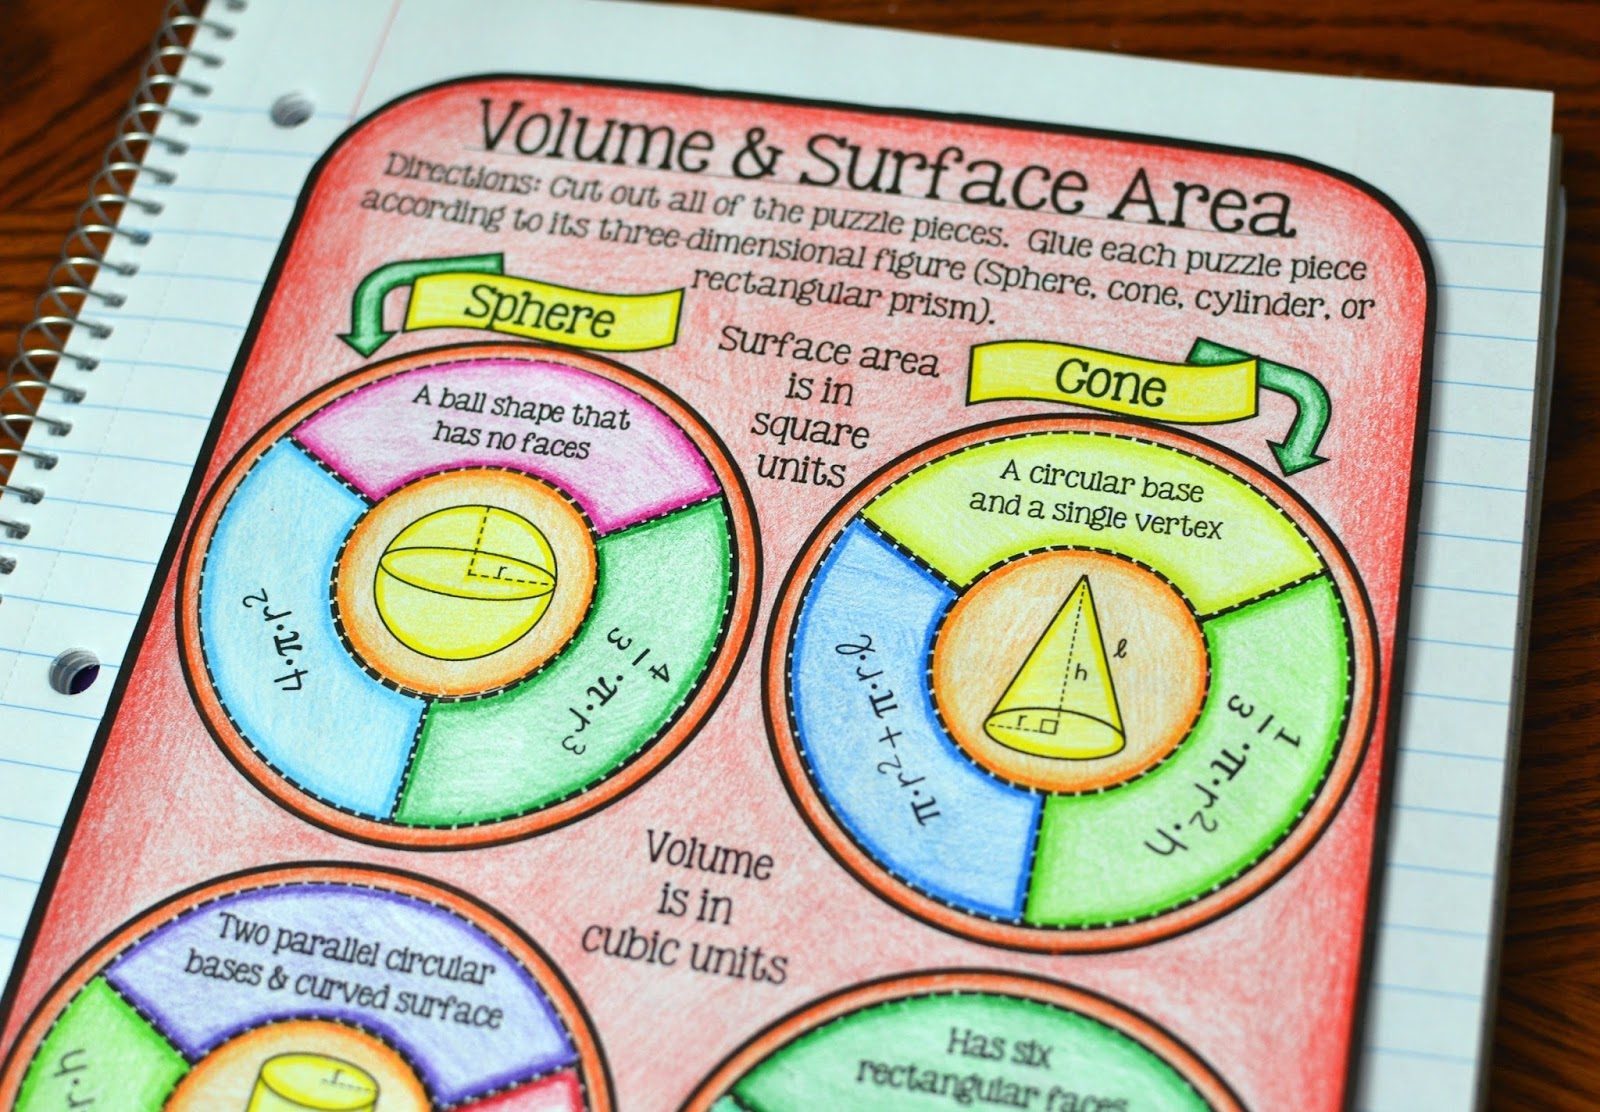 volume and surface area Volume and surface area math games, explore the volumes and surface areas of solids or 3d objects with fun and games, volume and capacity games, volume and surface.